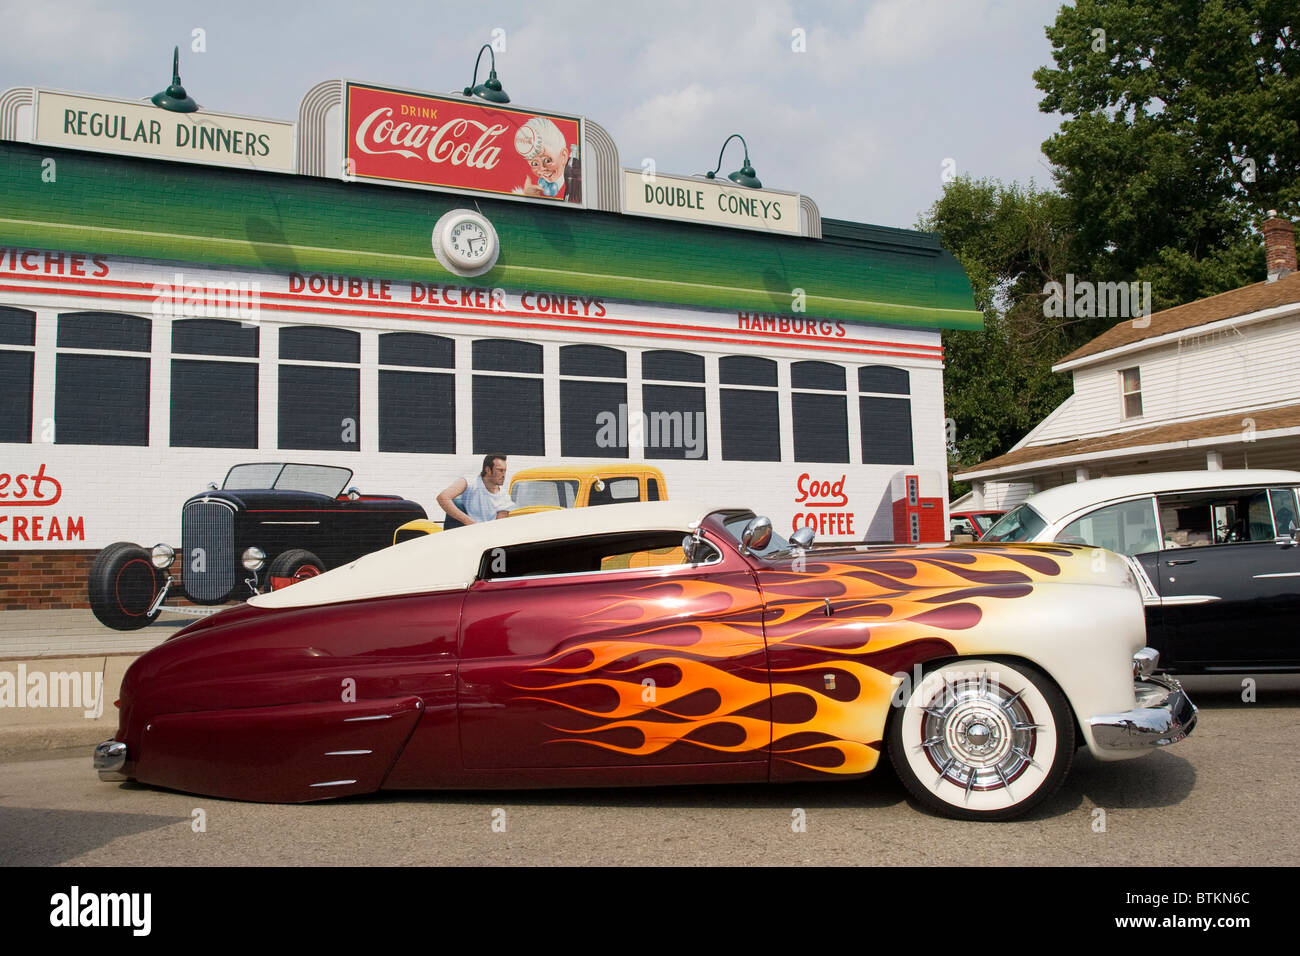 Auto- 1950 Mercury customized at Franklin, Ohio, USA, car show. Building with painted diner mural and Coca Cola Stock Photo